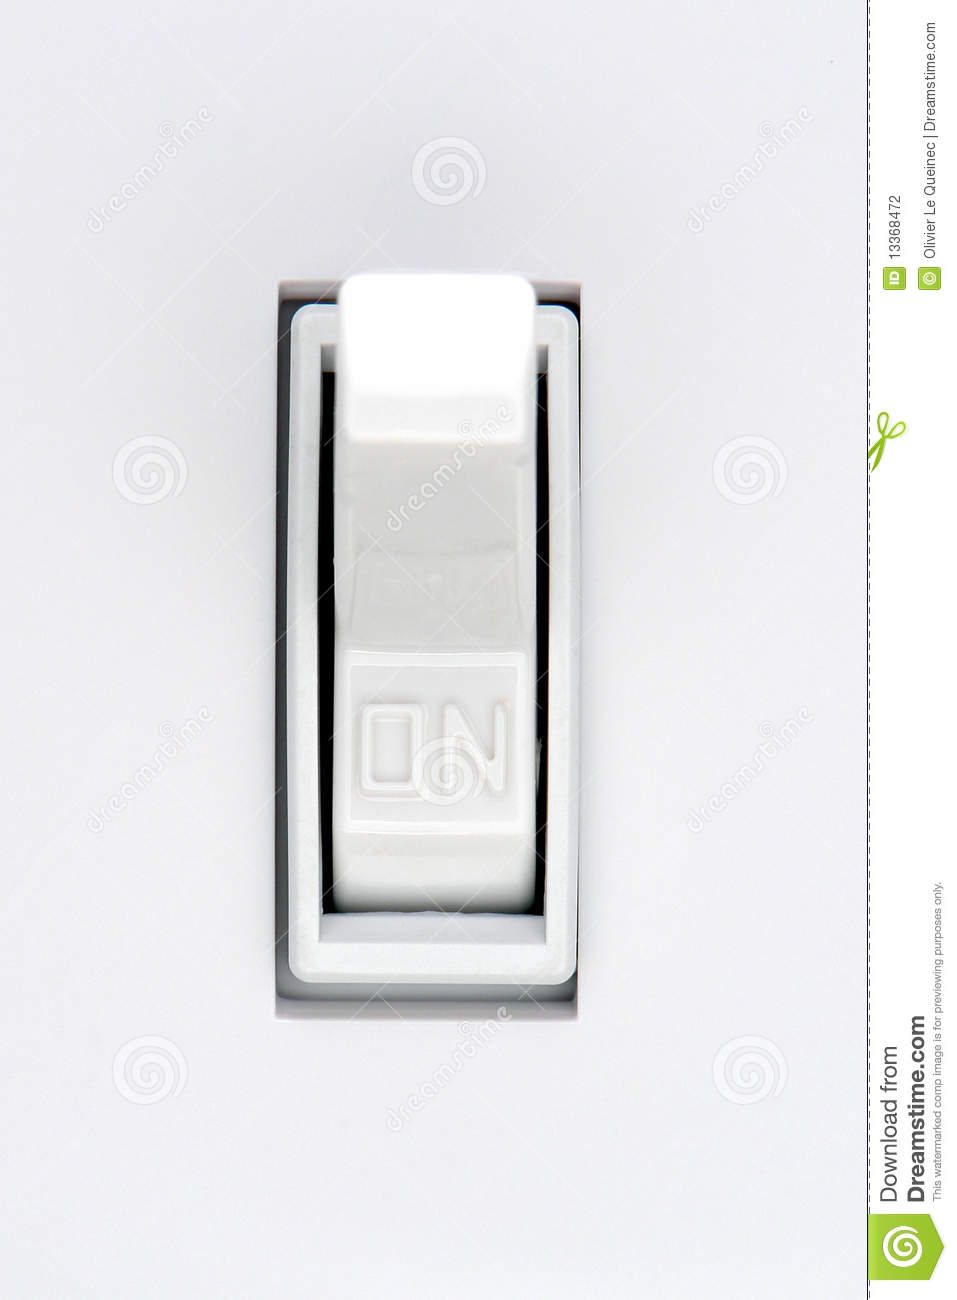 house electric light switch in on position stock photo On housse switch